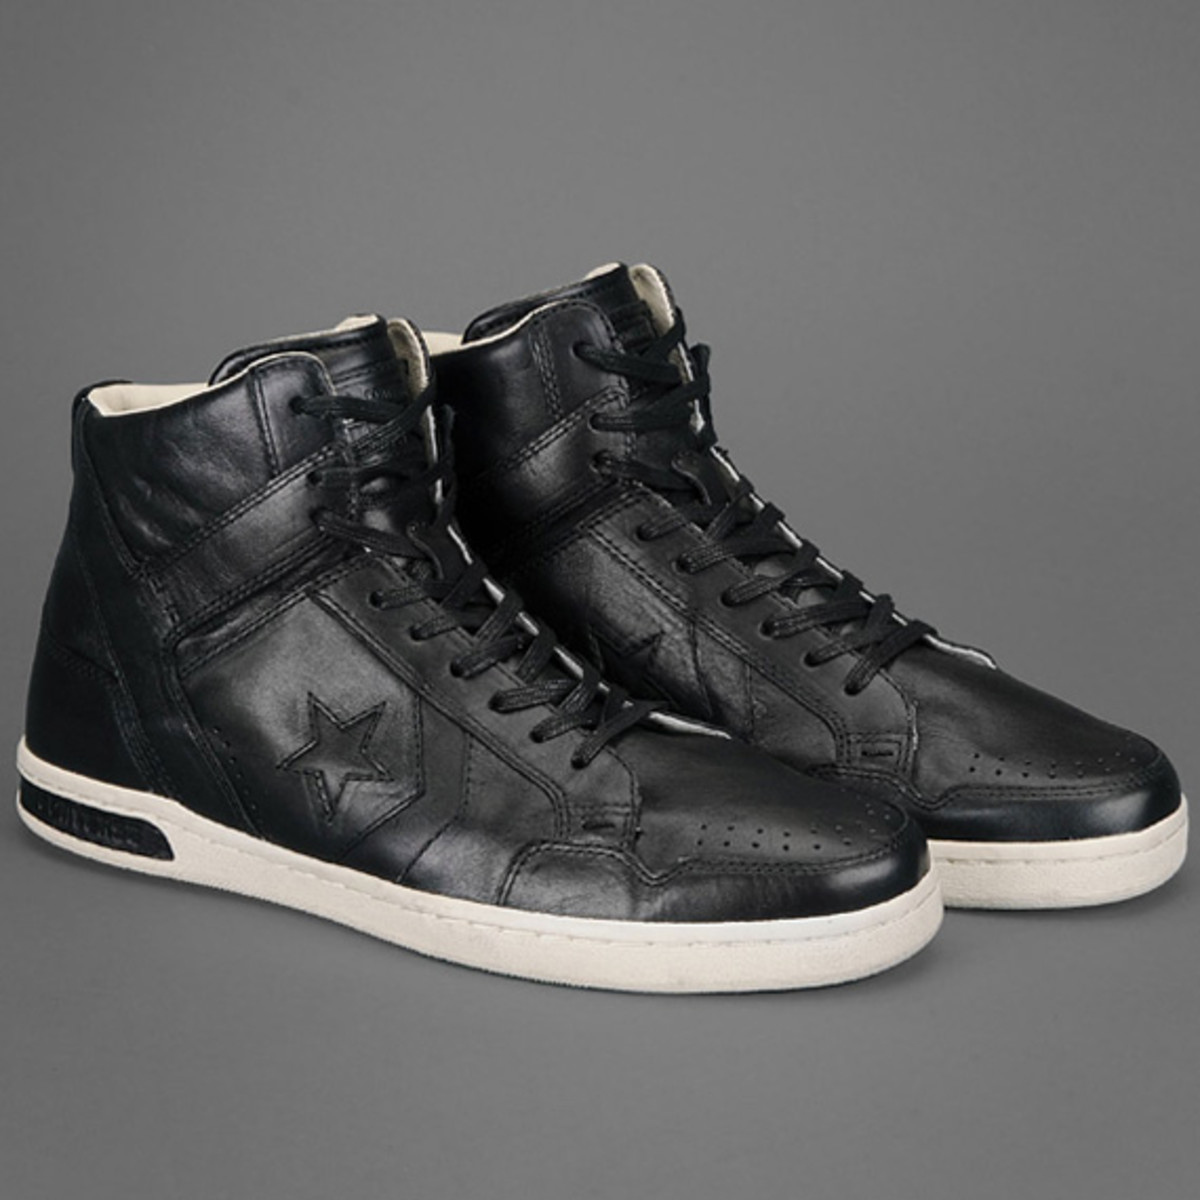 john-varvatos-converse-weapon-16